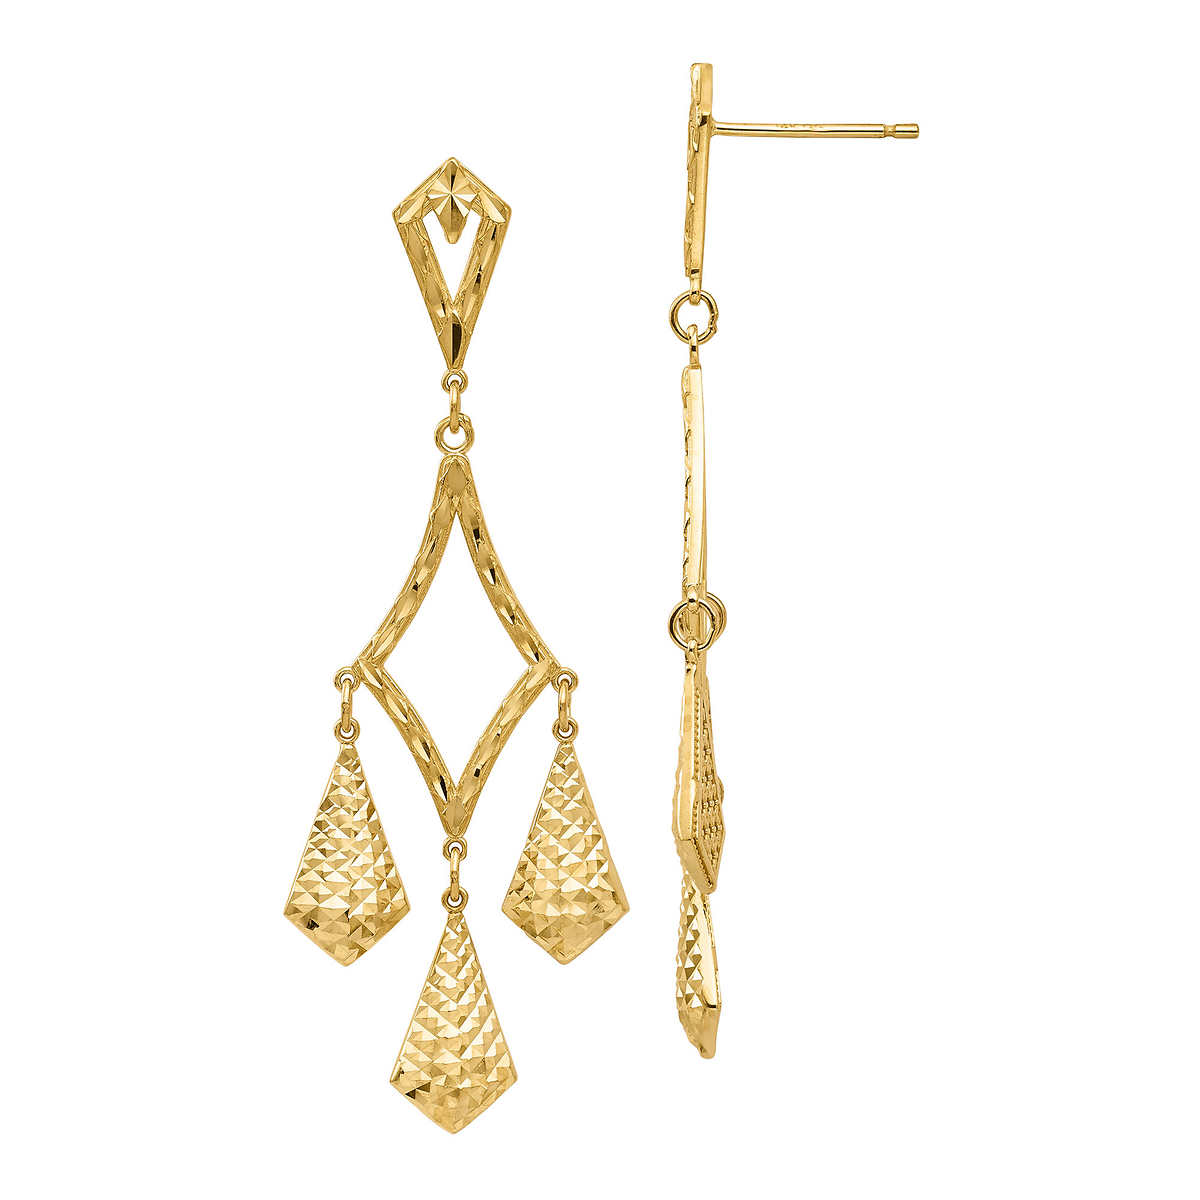 14kt yellow gold diamond cut chandelier earrings 14kt yellow gold diamond cut chandelier earrings item 1197093 click to zoom arubaitofo Gallery